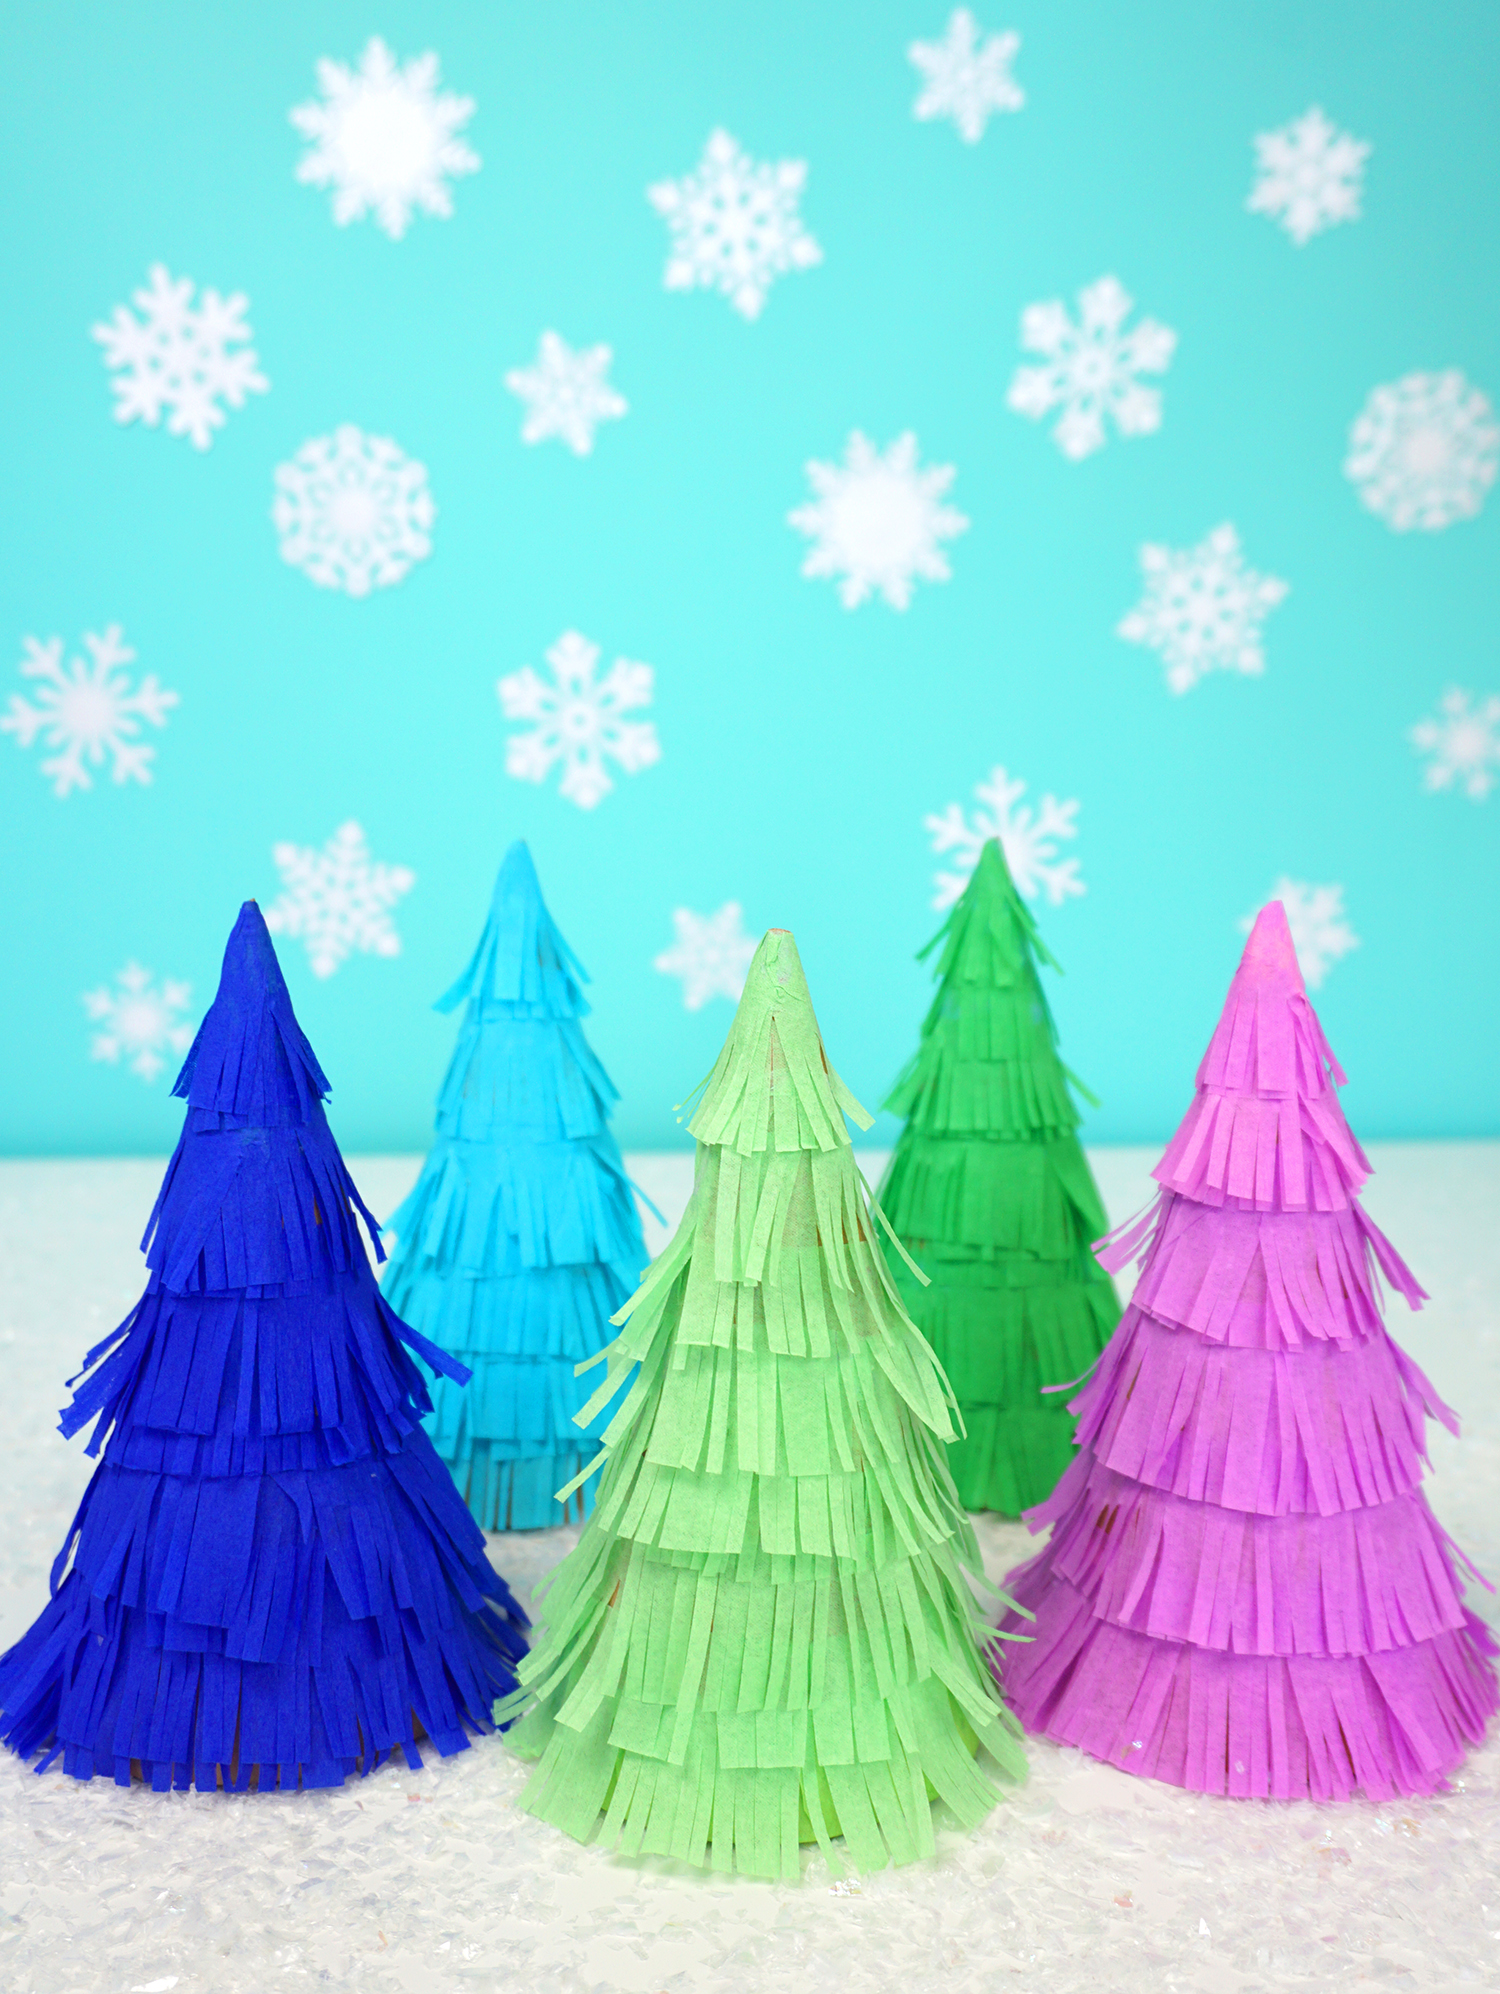 These cute Christmas tree piñatas are packed full of goodies and tasty treats, so they do double duty as both holiday decor AND party favors for your ...